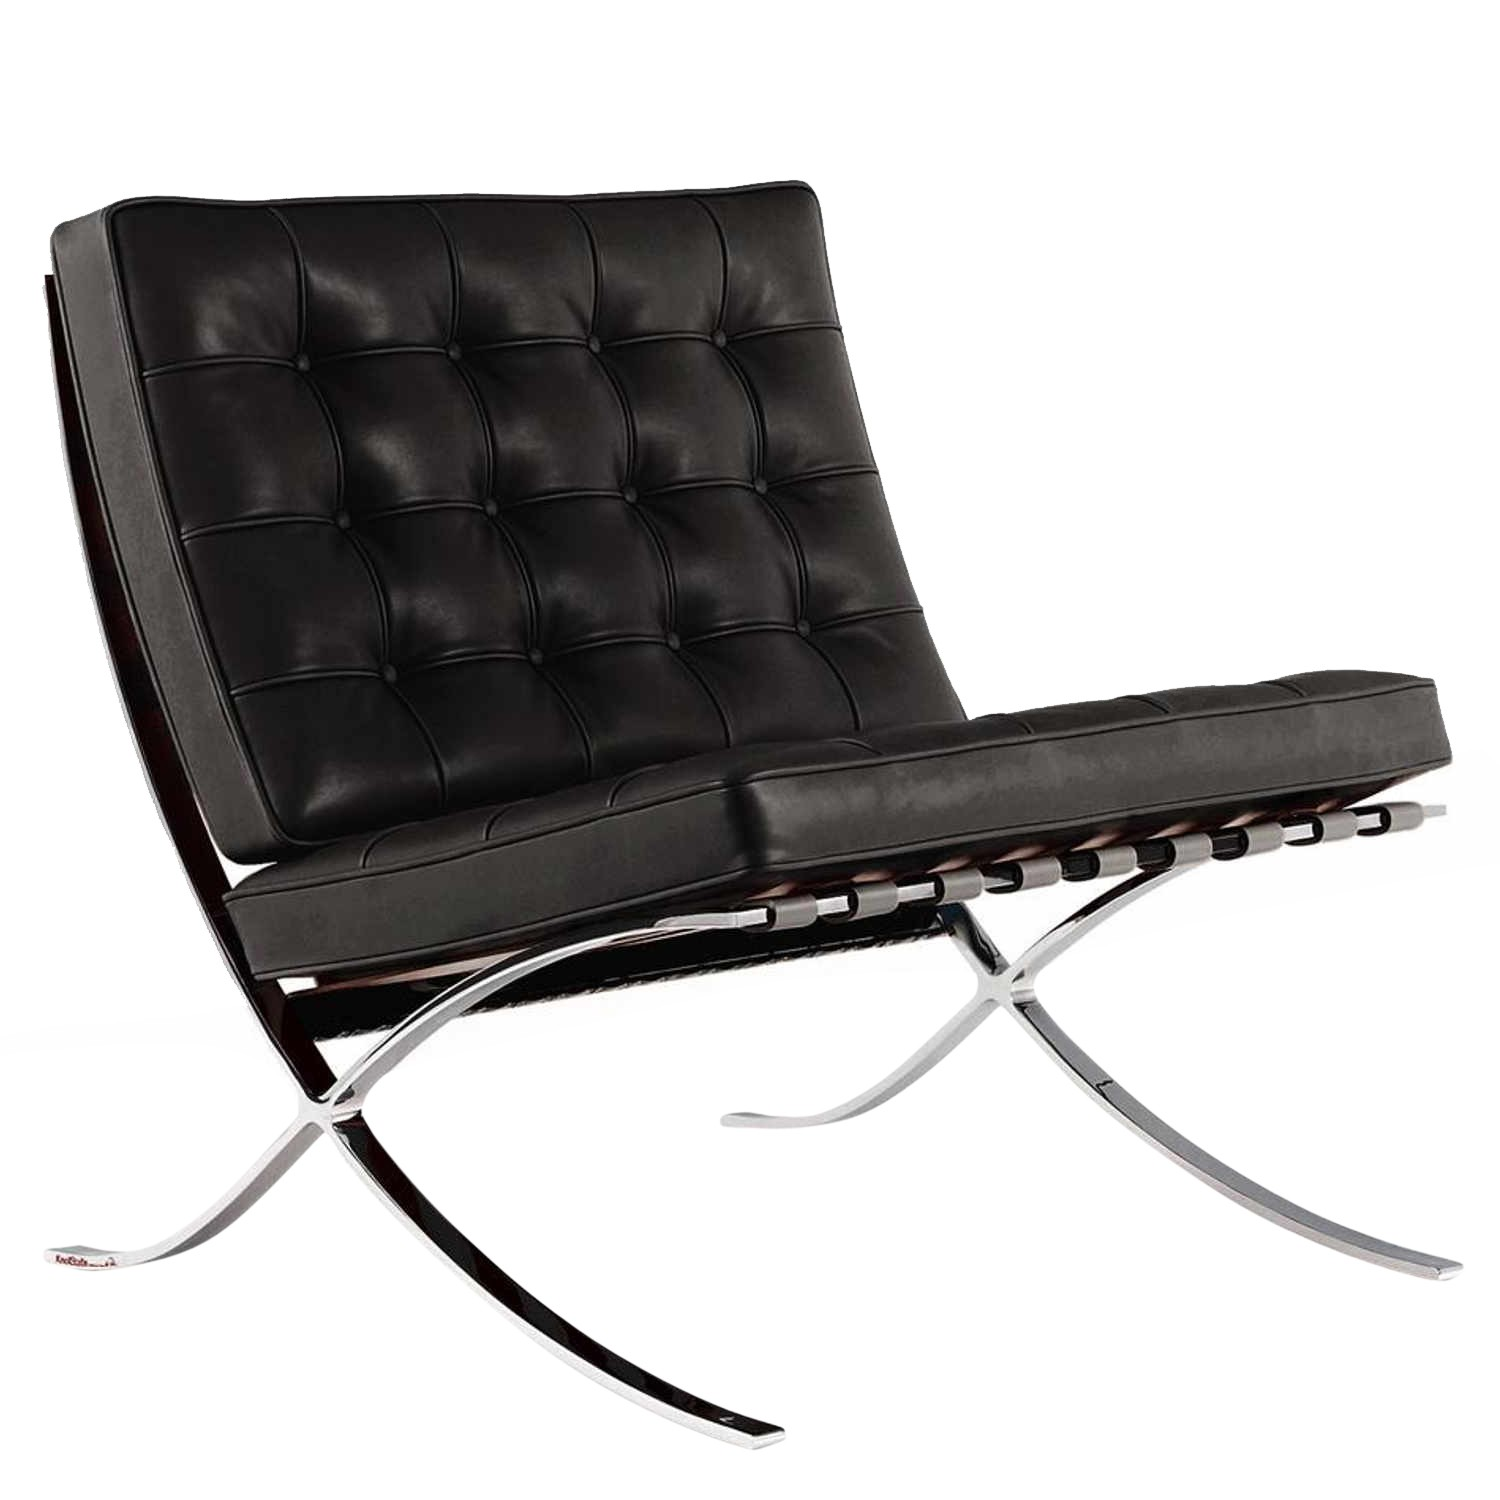 Knoll International Barcelona Relax Sessel bruno wickart